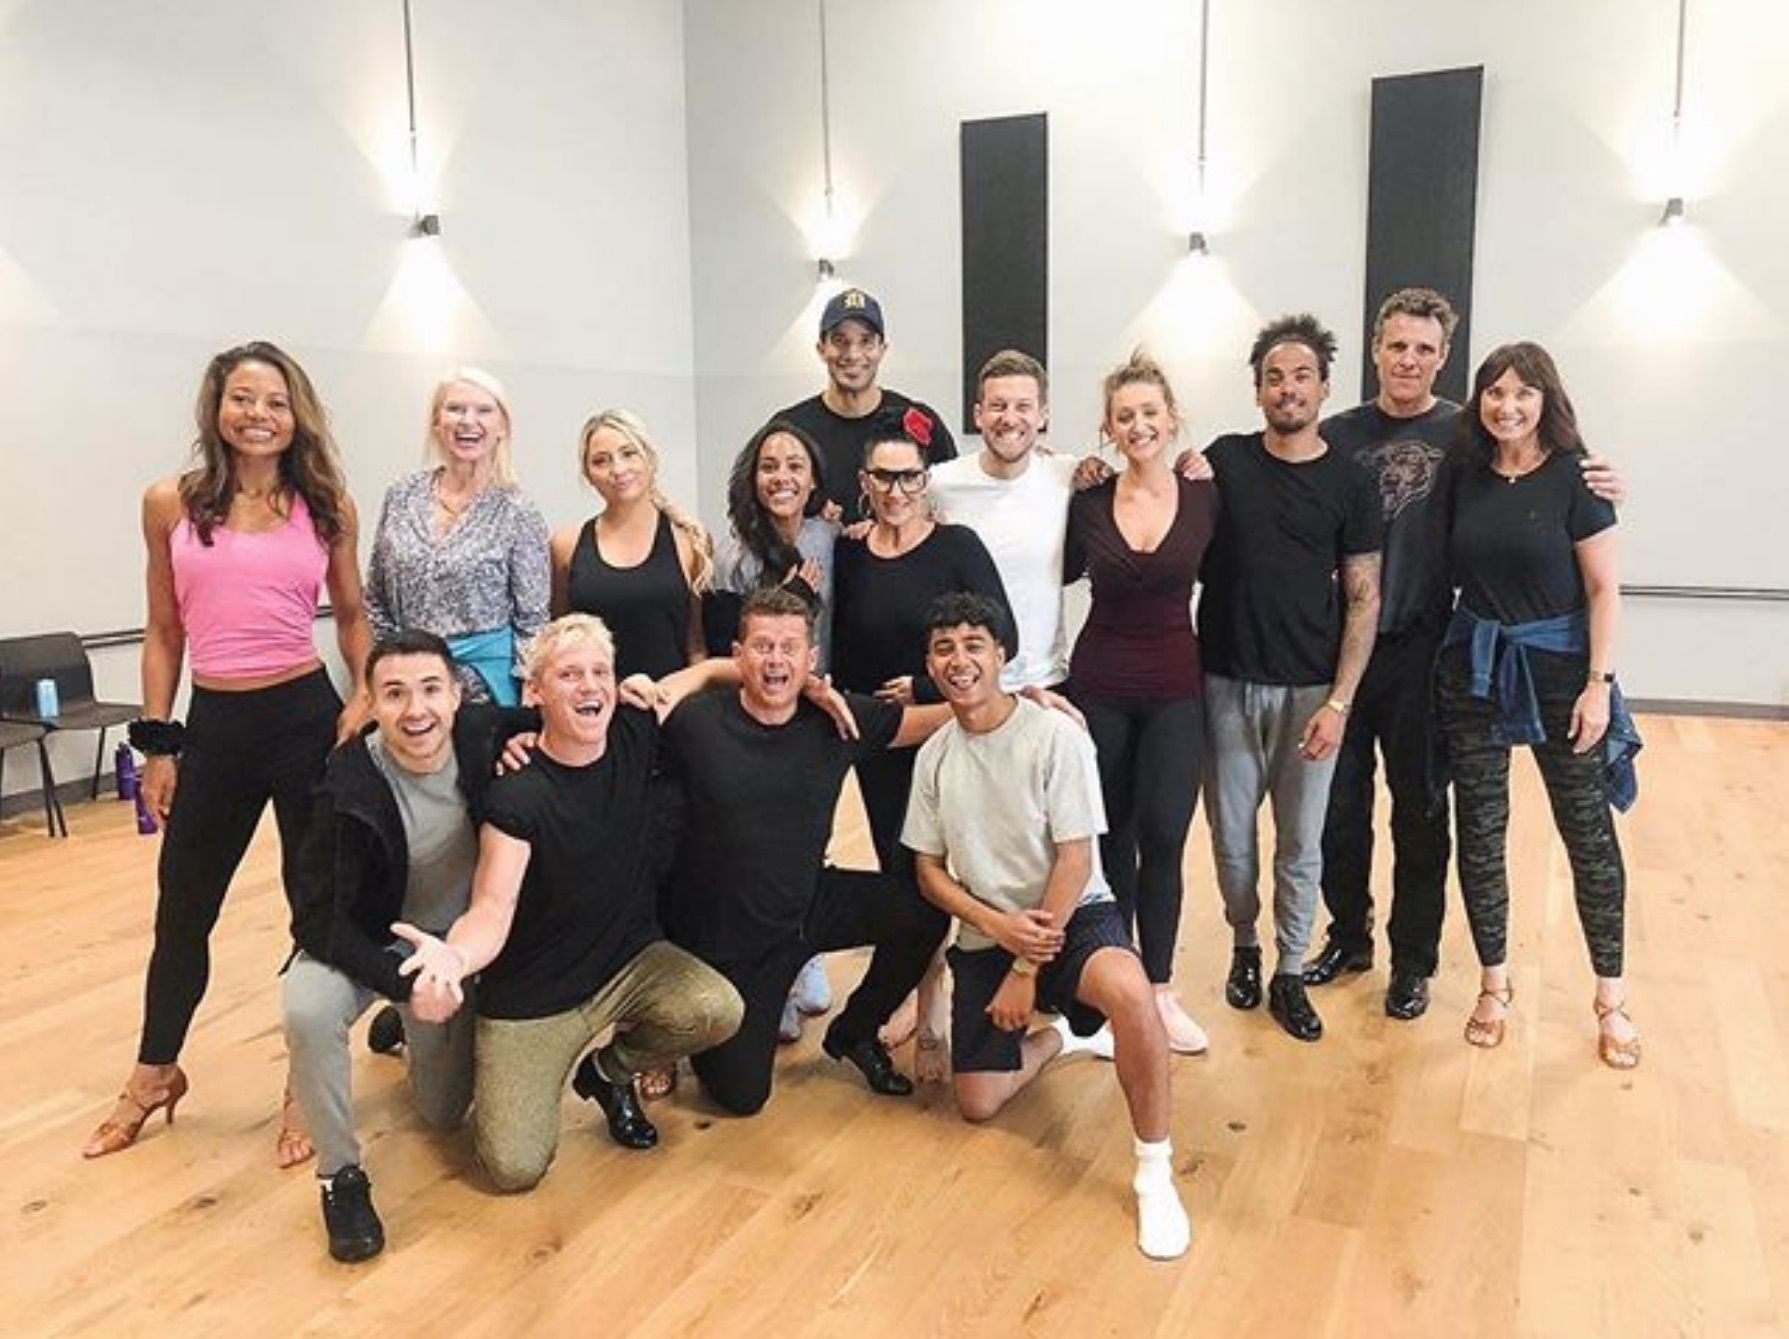 Strictly Come Dancing stars meet their dance partners for the first time